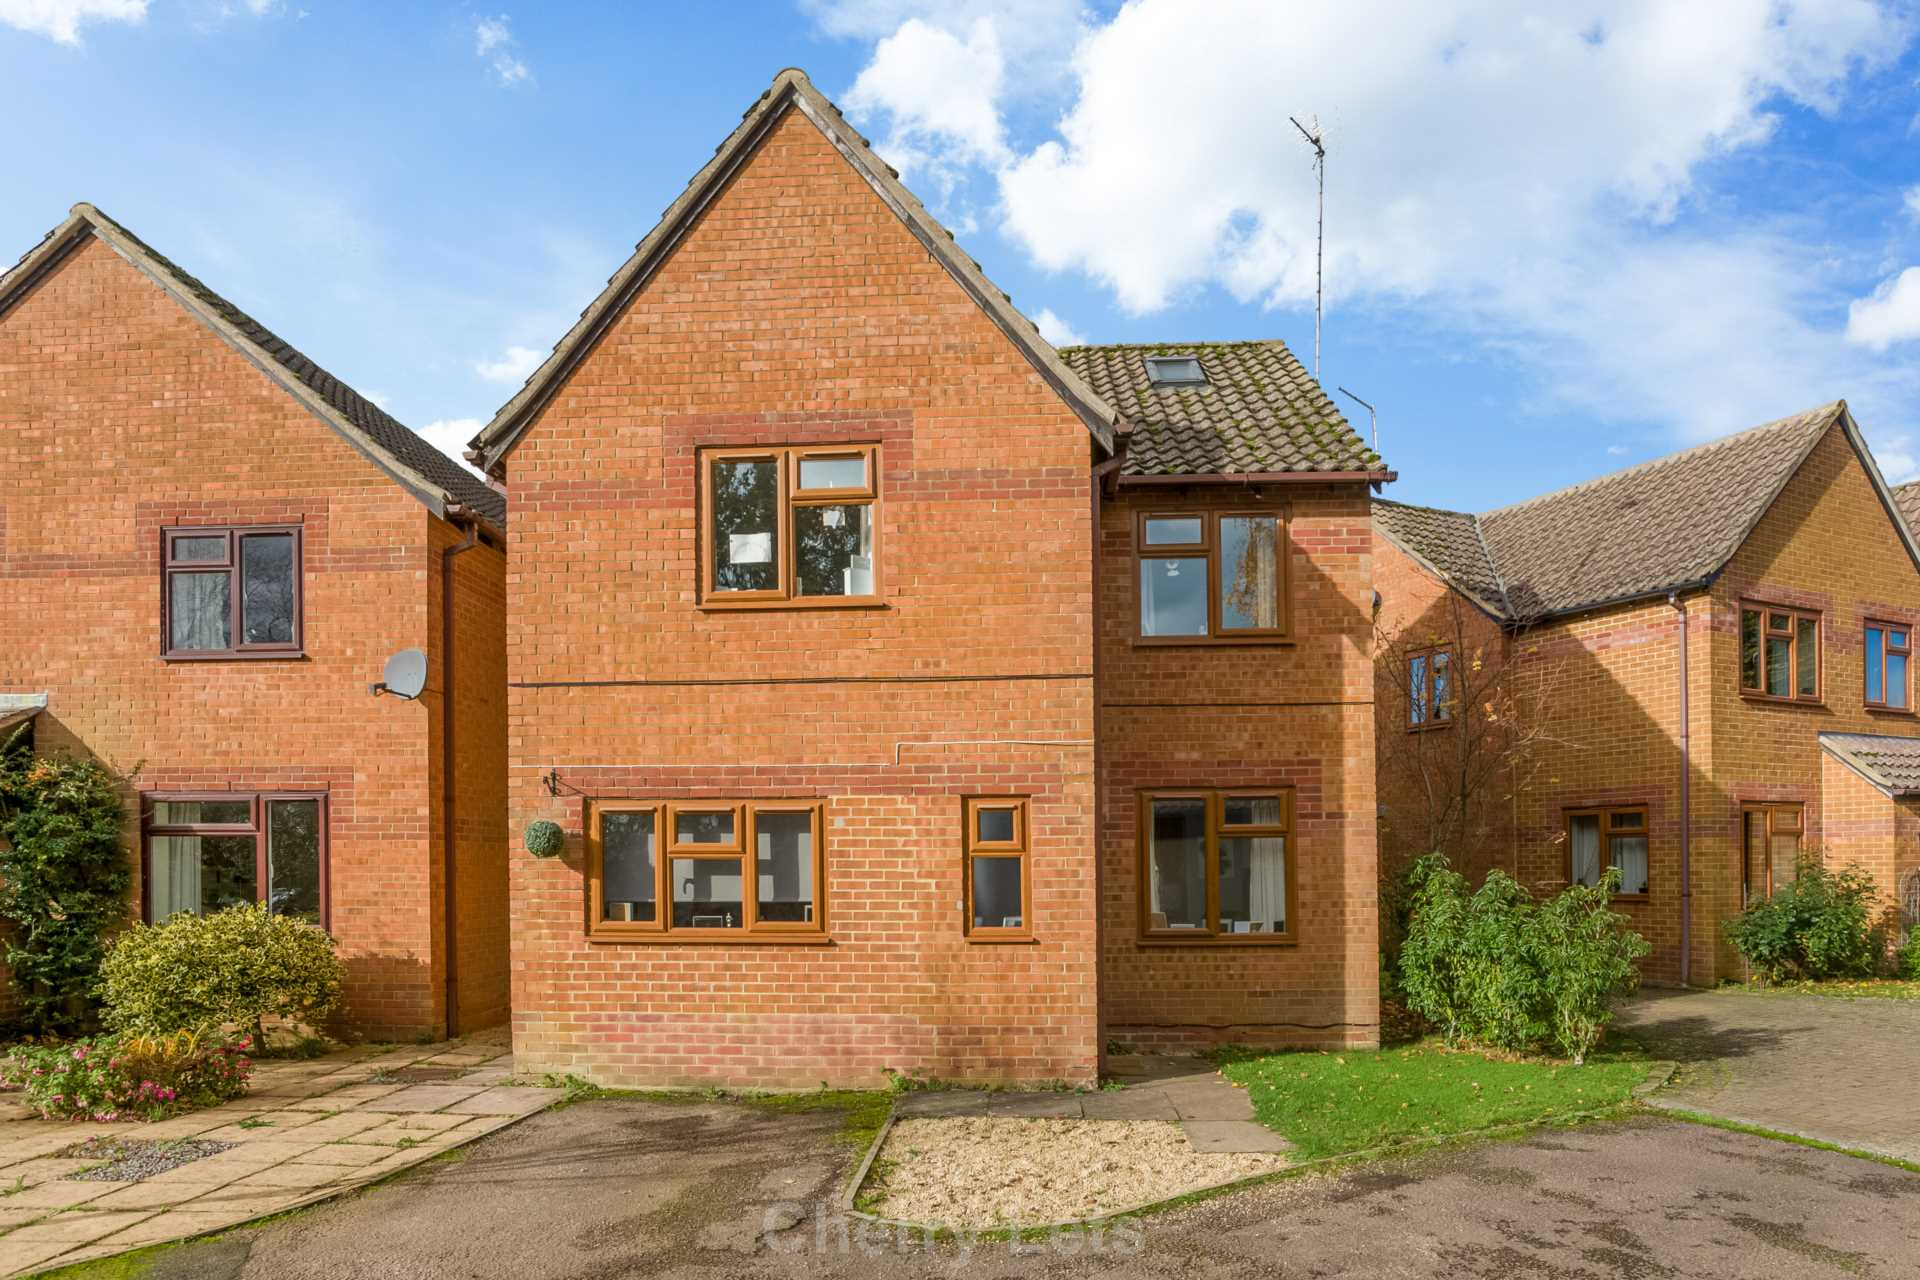 3 bed detached house to rent in Mill Close, Deddington, OX15 17